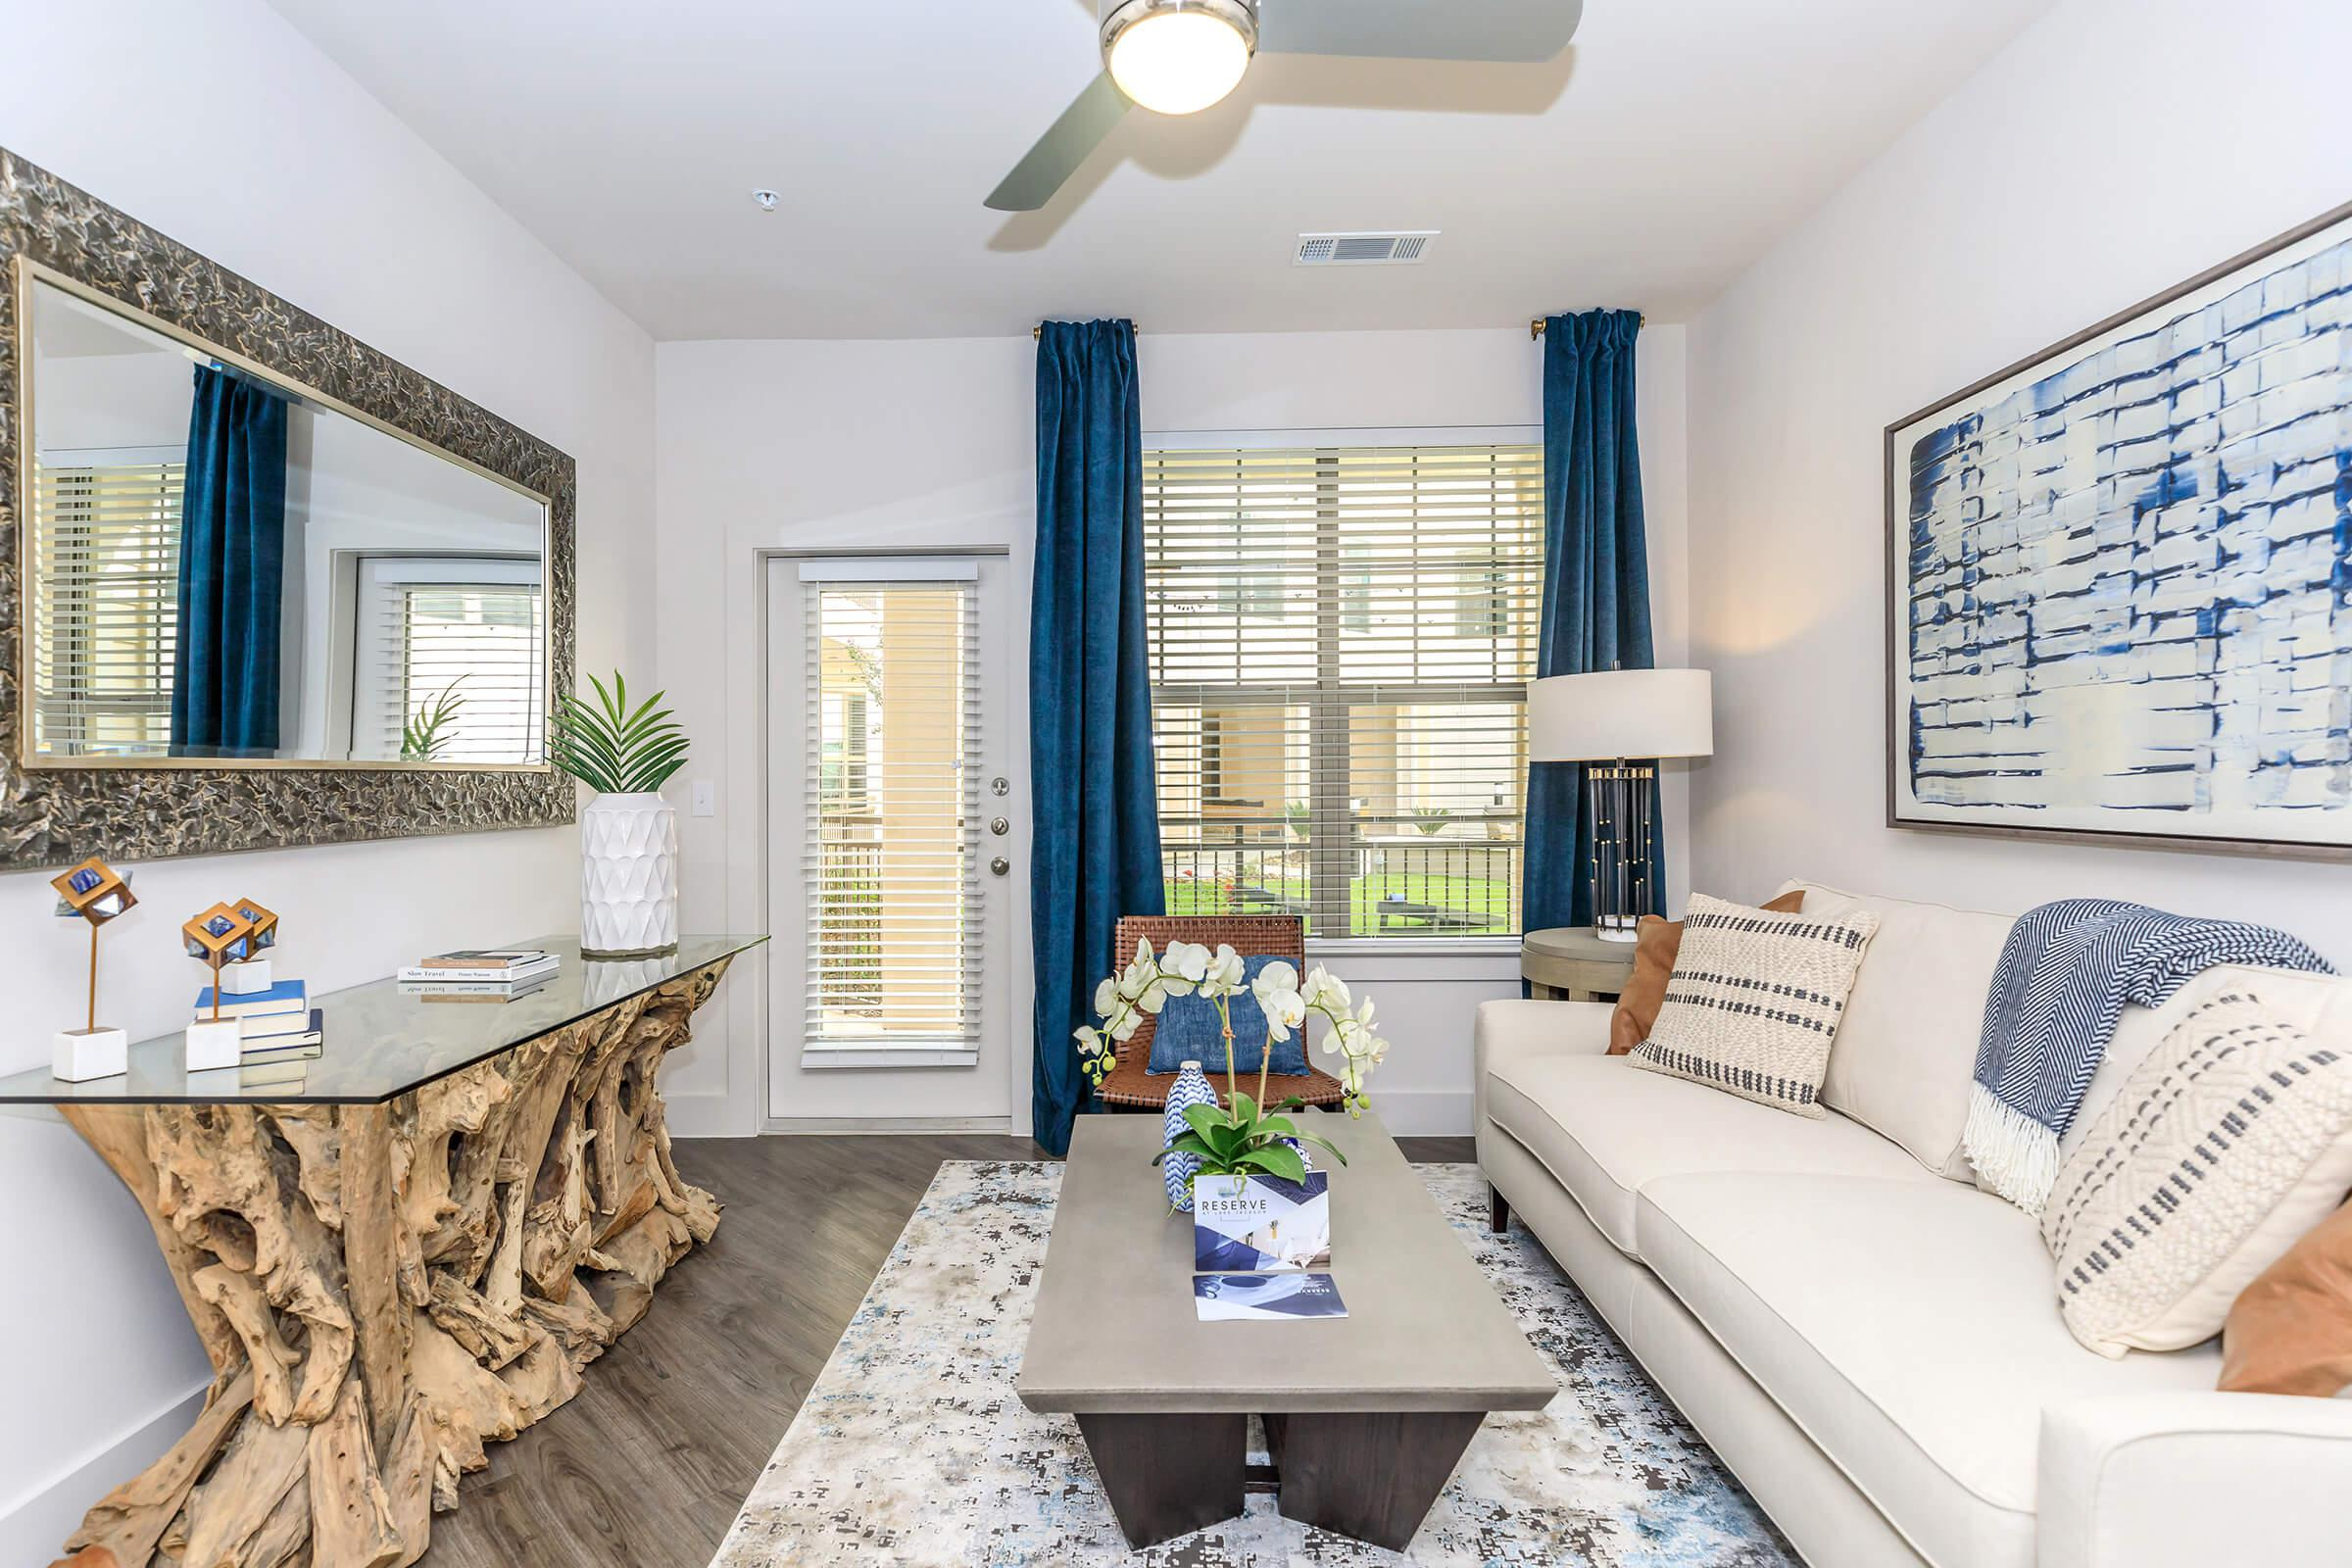 WELCOME HOME TO RESERVE AT LAKE JACKSON IN LAKE JACKSON, TEXAS!